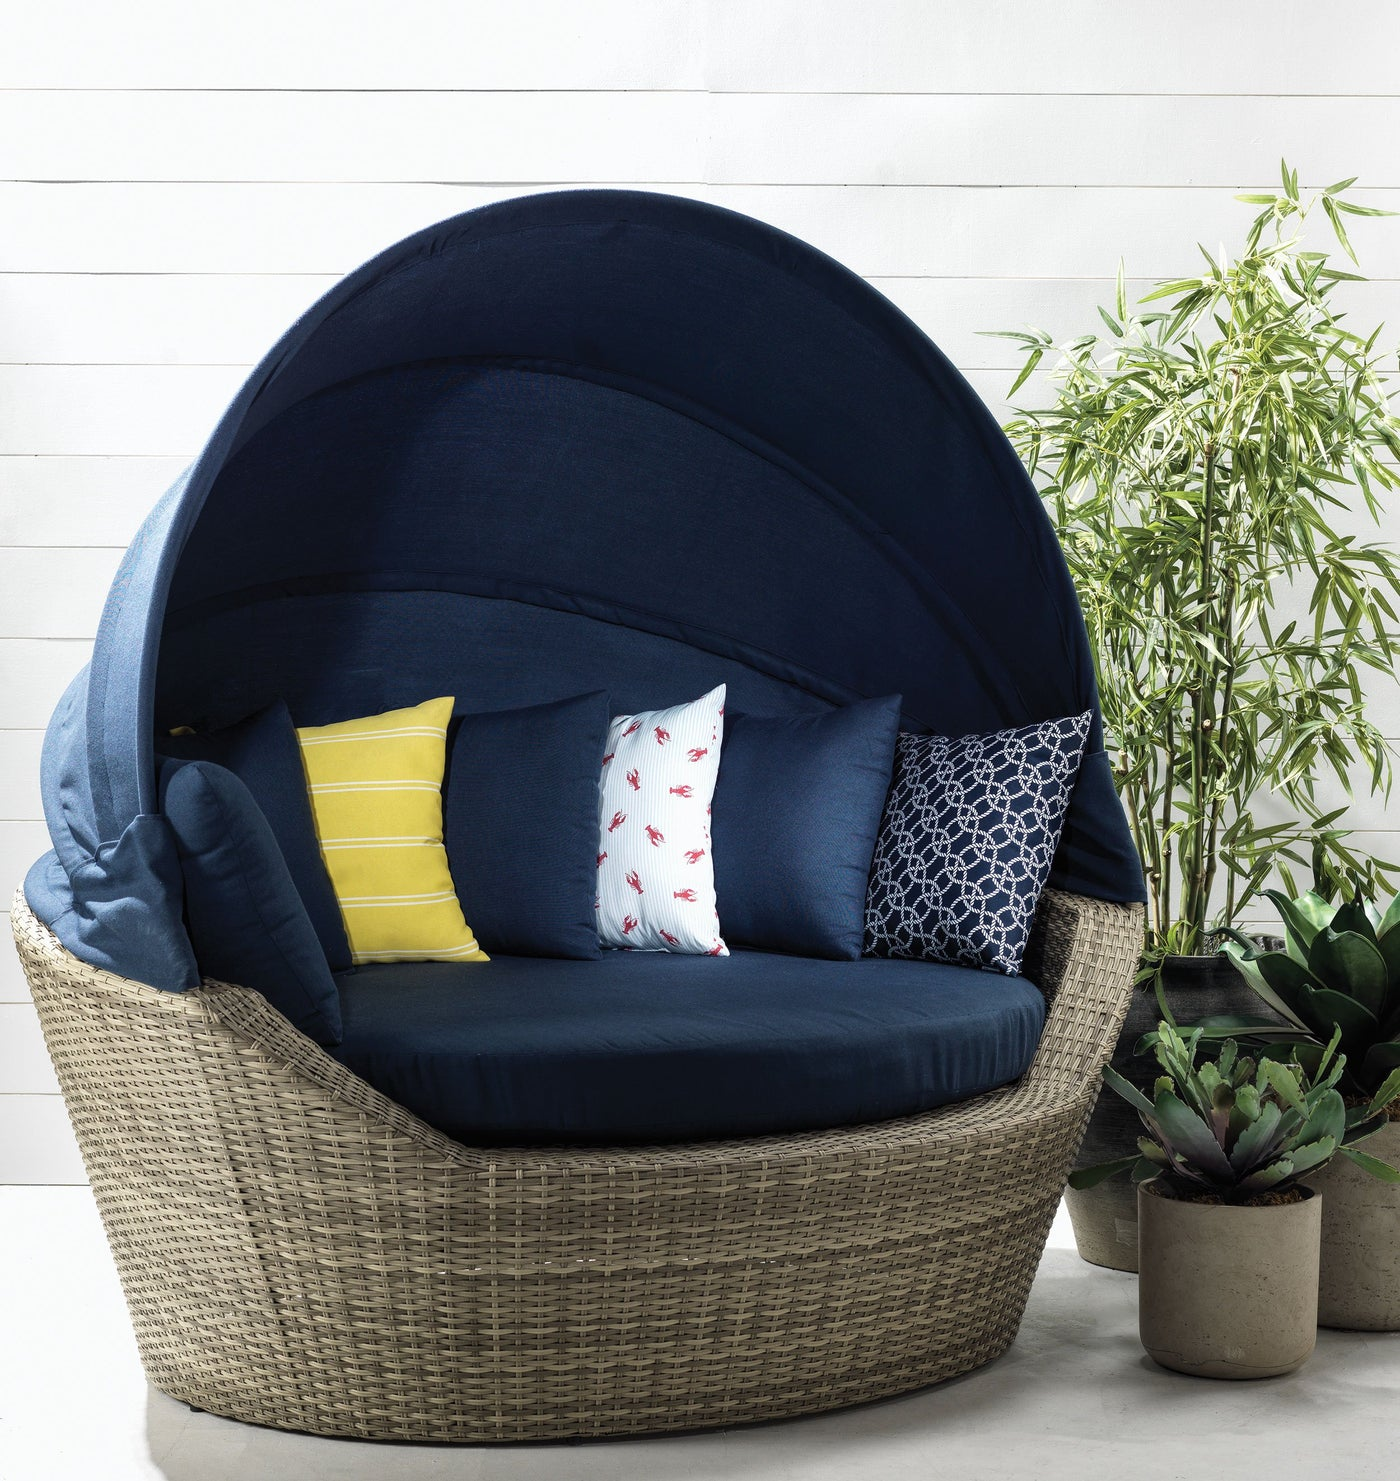 Jonathan patio daybed navy touch to zoom